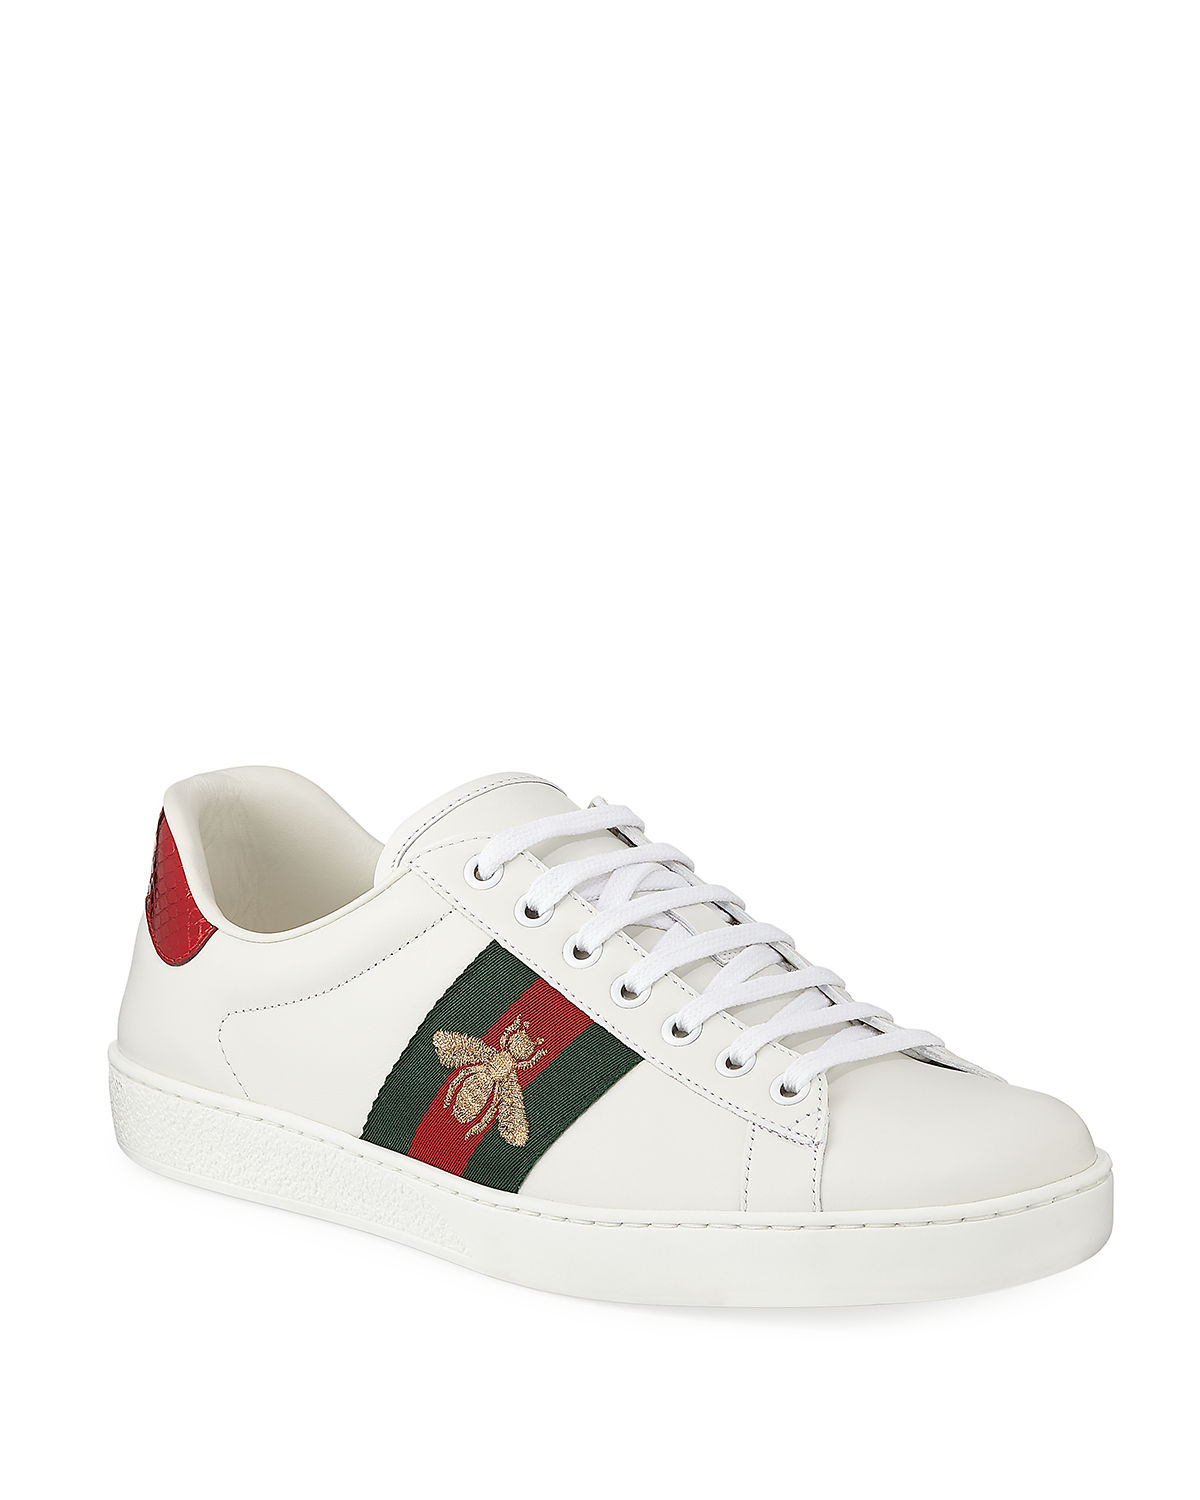 0f2a2661613 Gucci Men s New Ace Embroidered Low-Top Sneakers